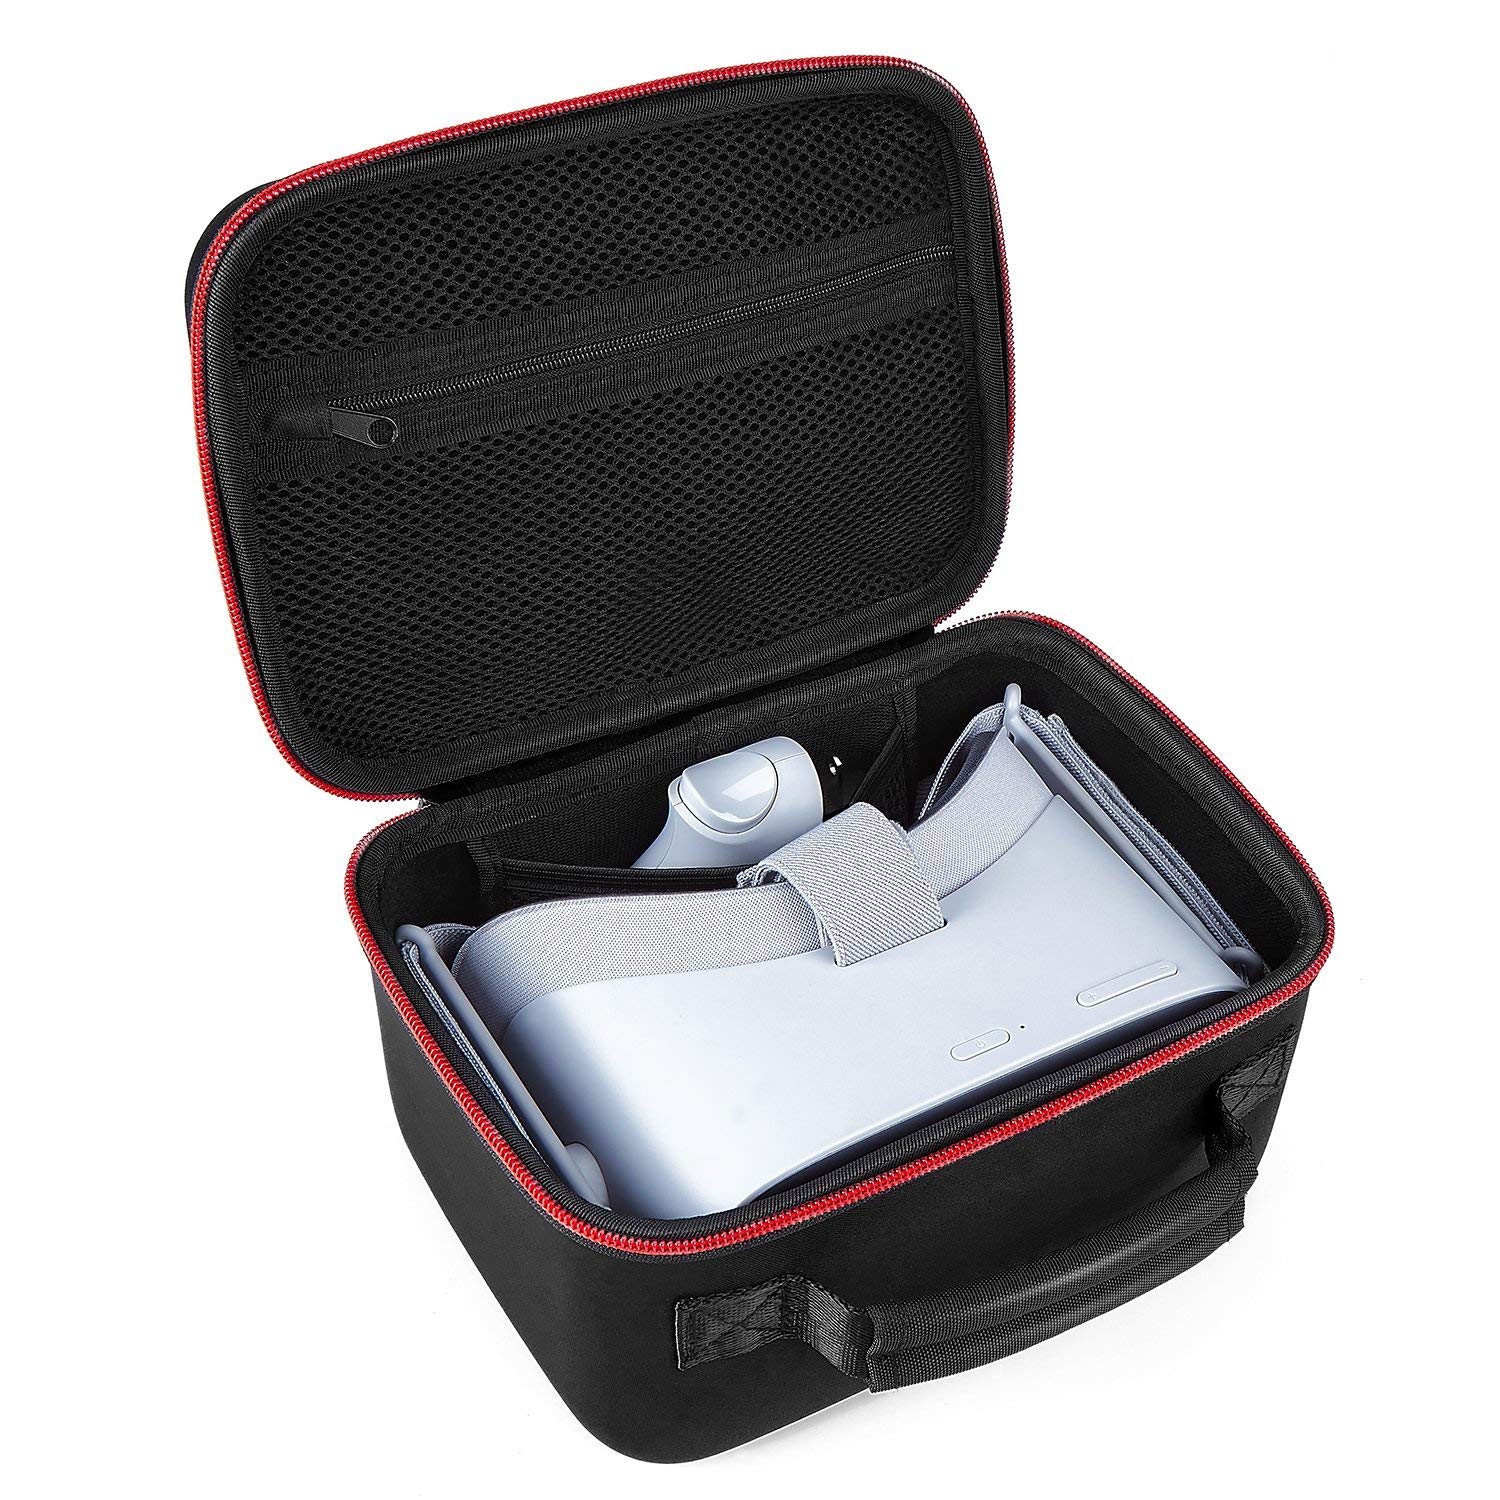 Hard Travel Case for Oculus Go Virtual Reality Headset - Oculus Go VR Headset Storage Carrying Protective Bag